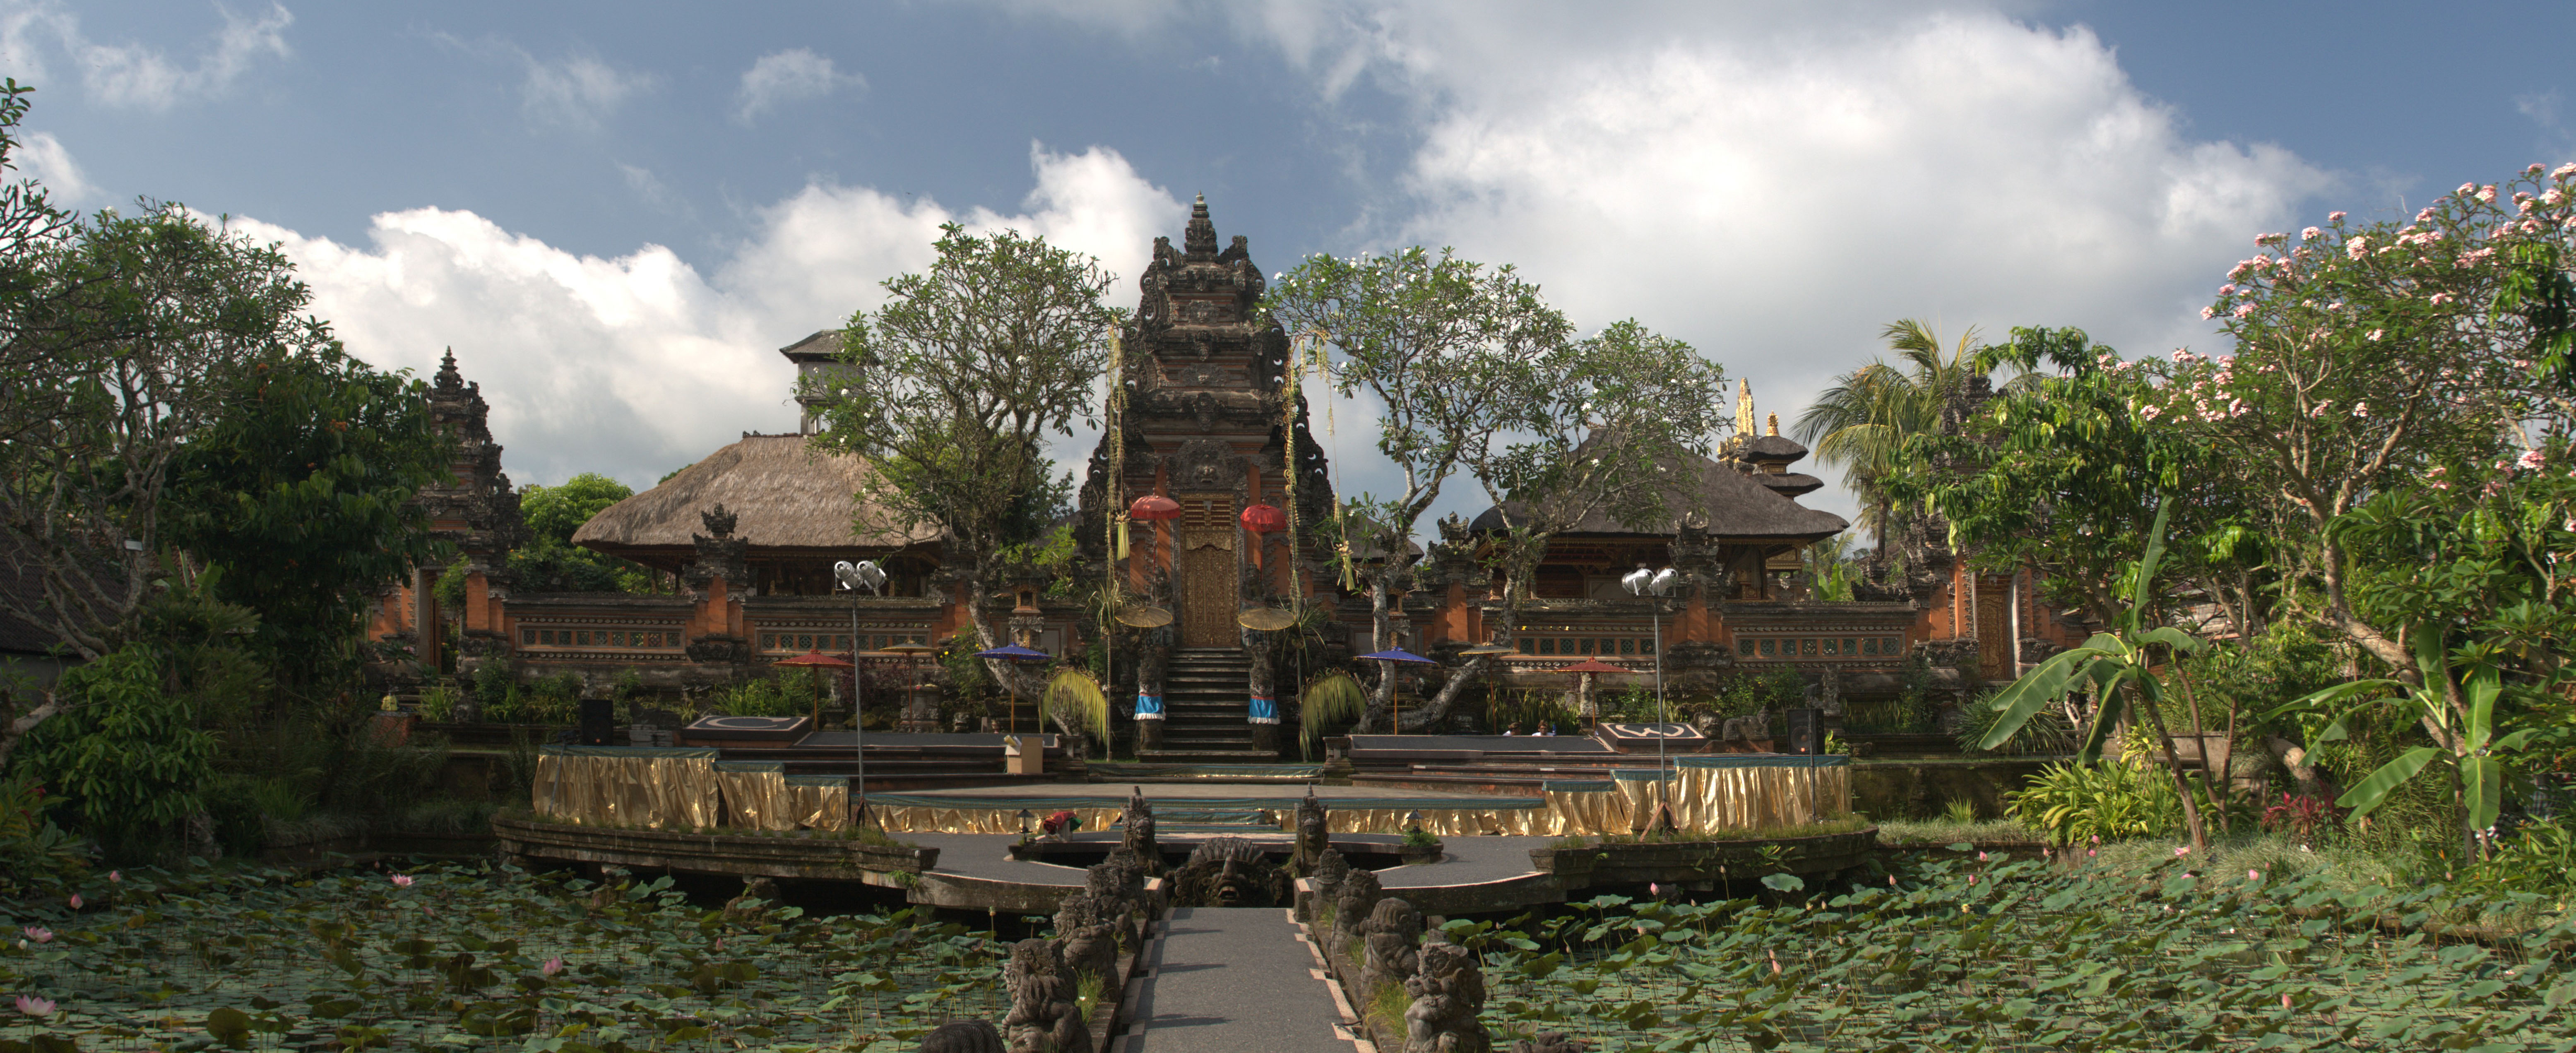 denpasar hindu singles Denpasar (bali), indonesia:  don't miss out on azamara quest over 16 exciting nights on the java sea & west australia cruise  remember that singles pay a very.